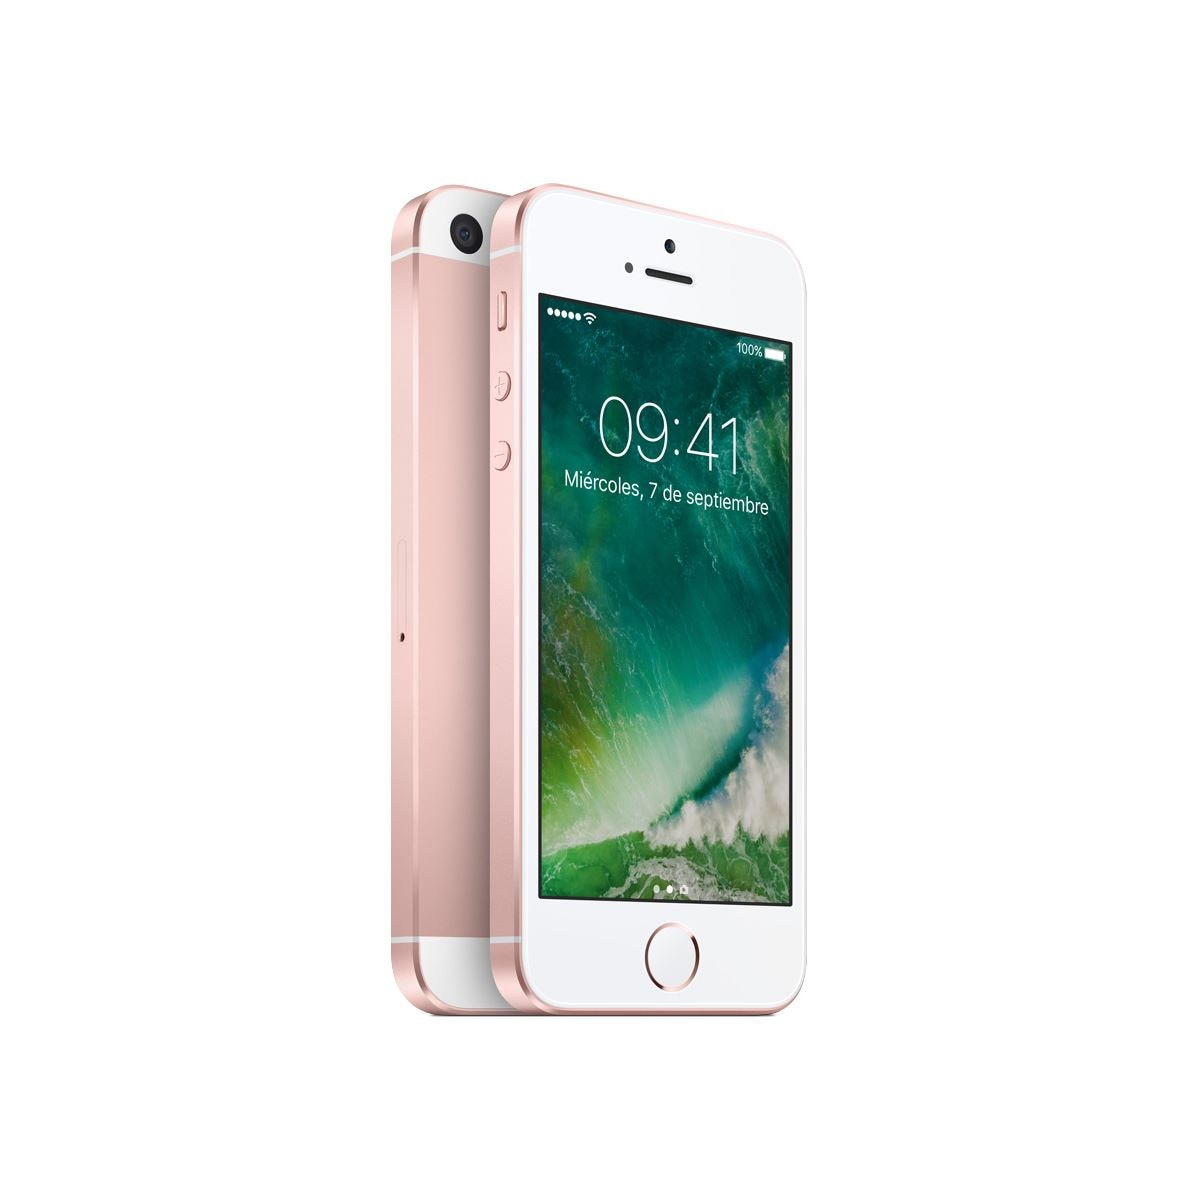 iPhone SE 32GB Color Rosa R9 (Telcel)